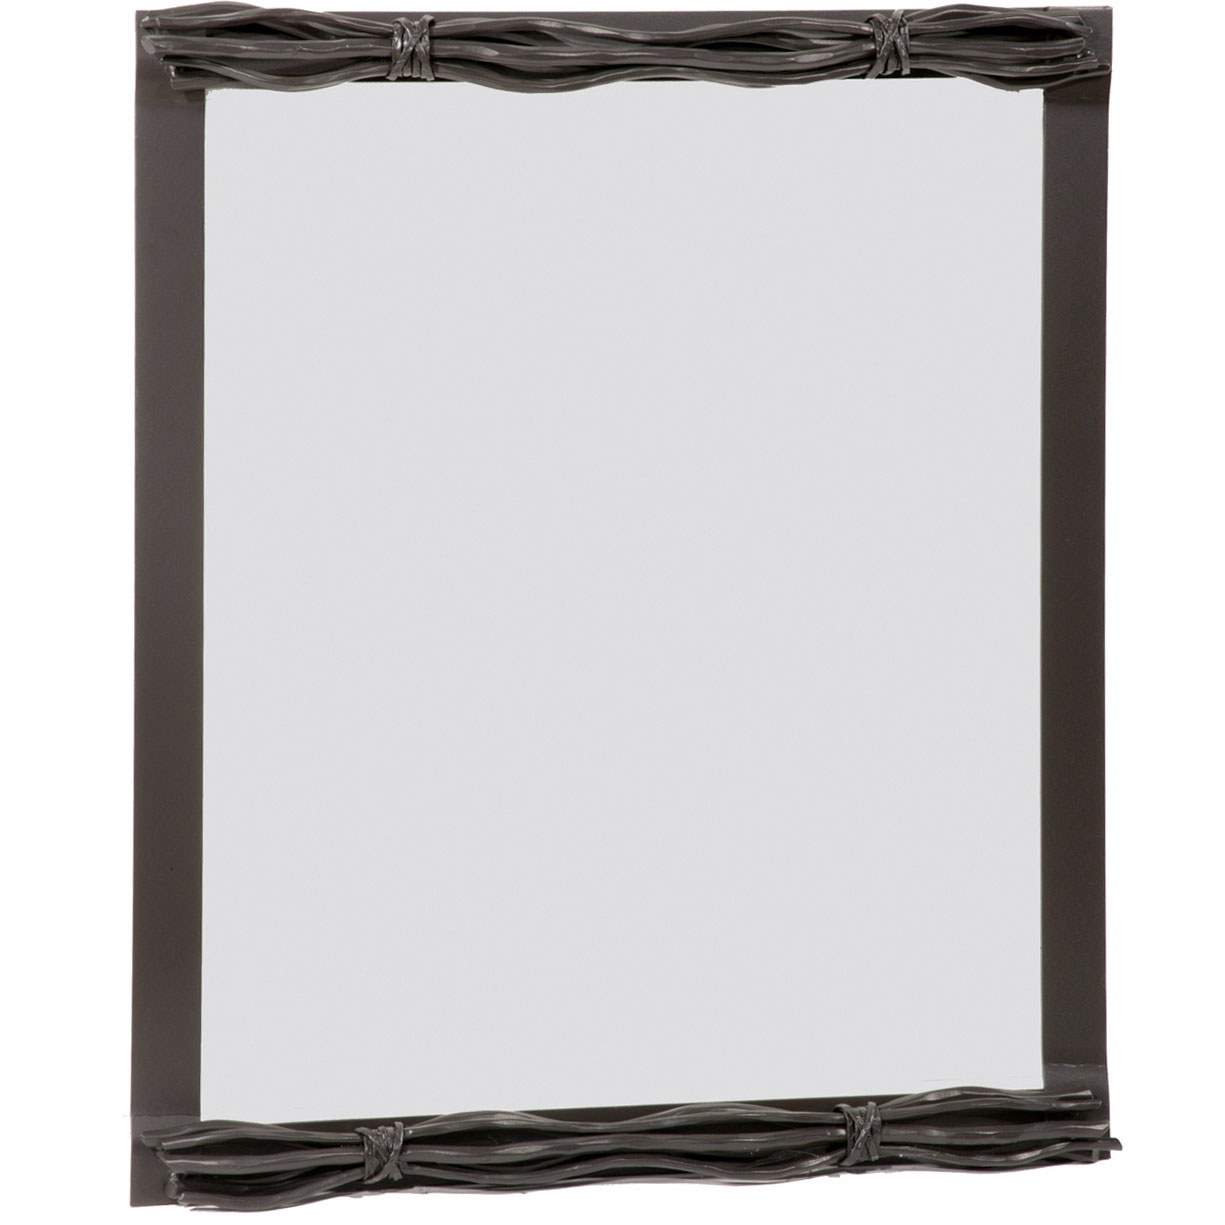 Rush wall mirror for Wrought iron mirror